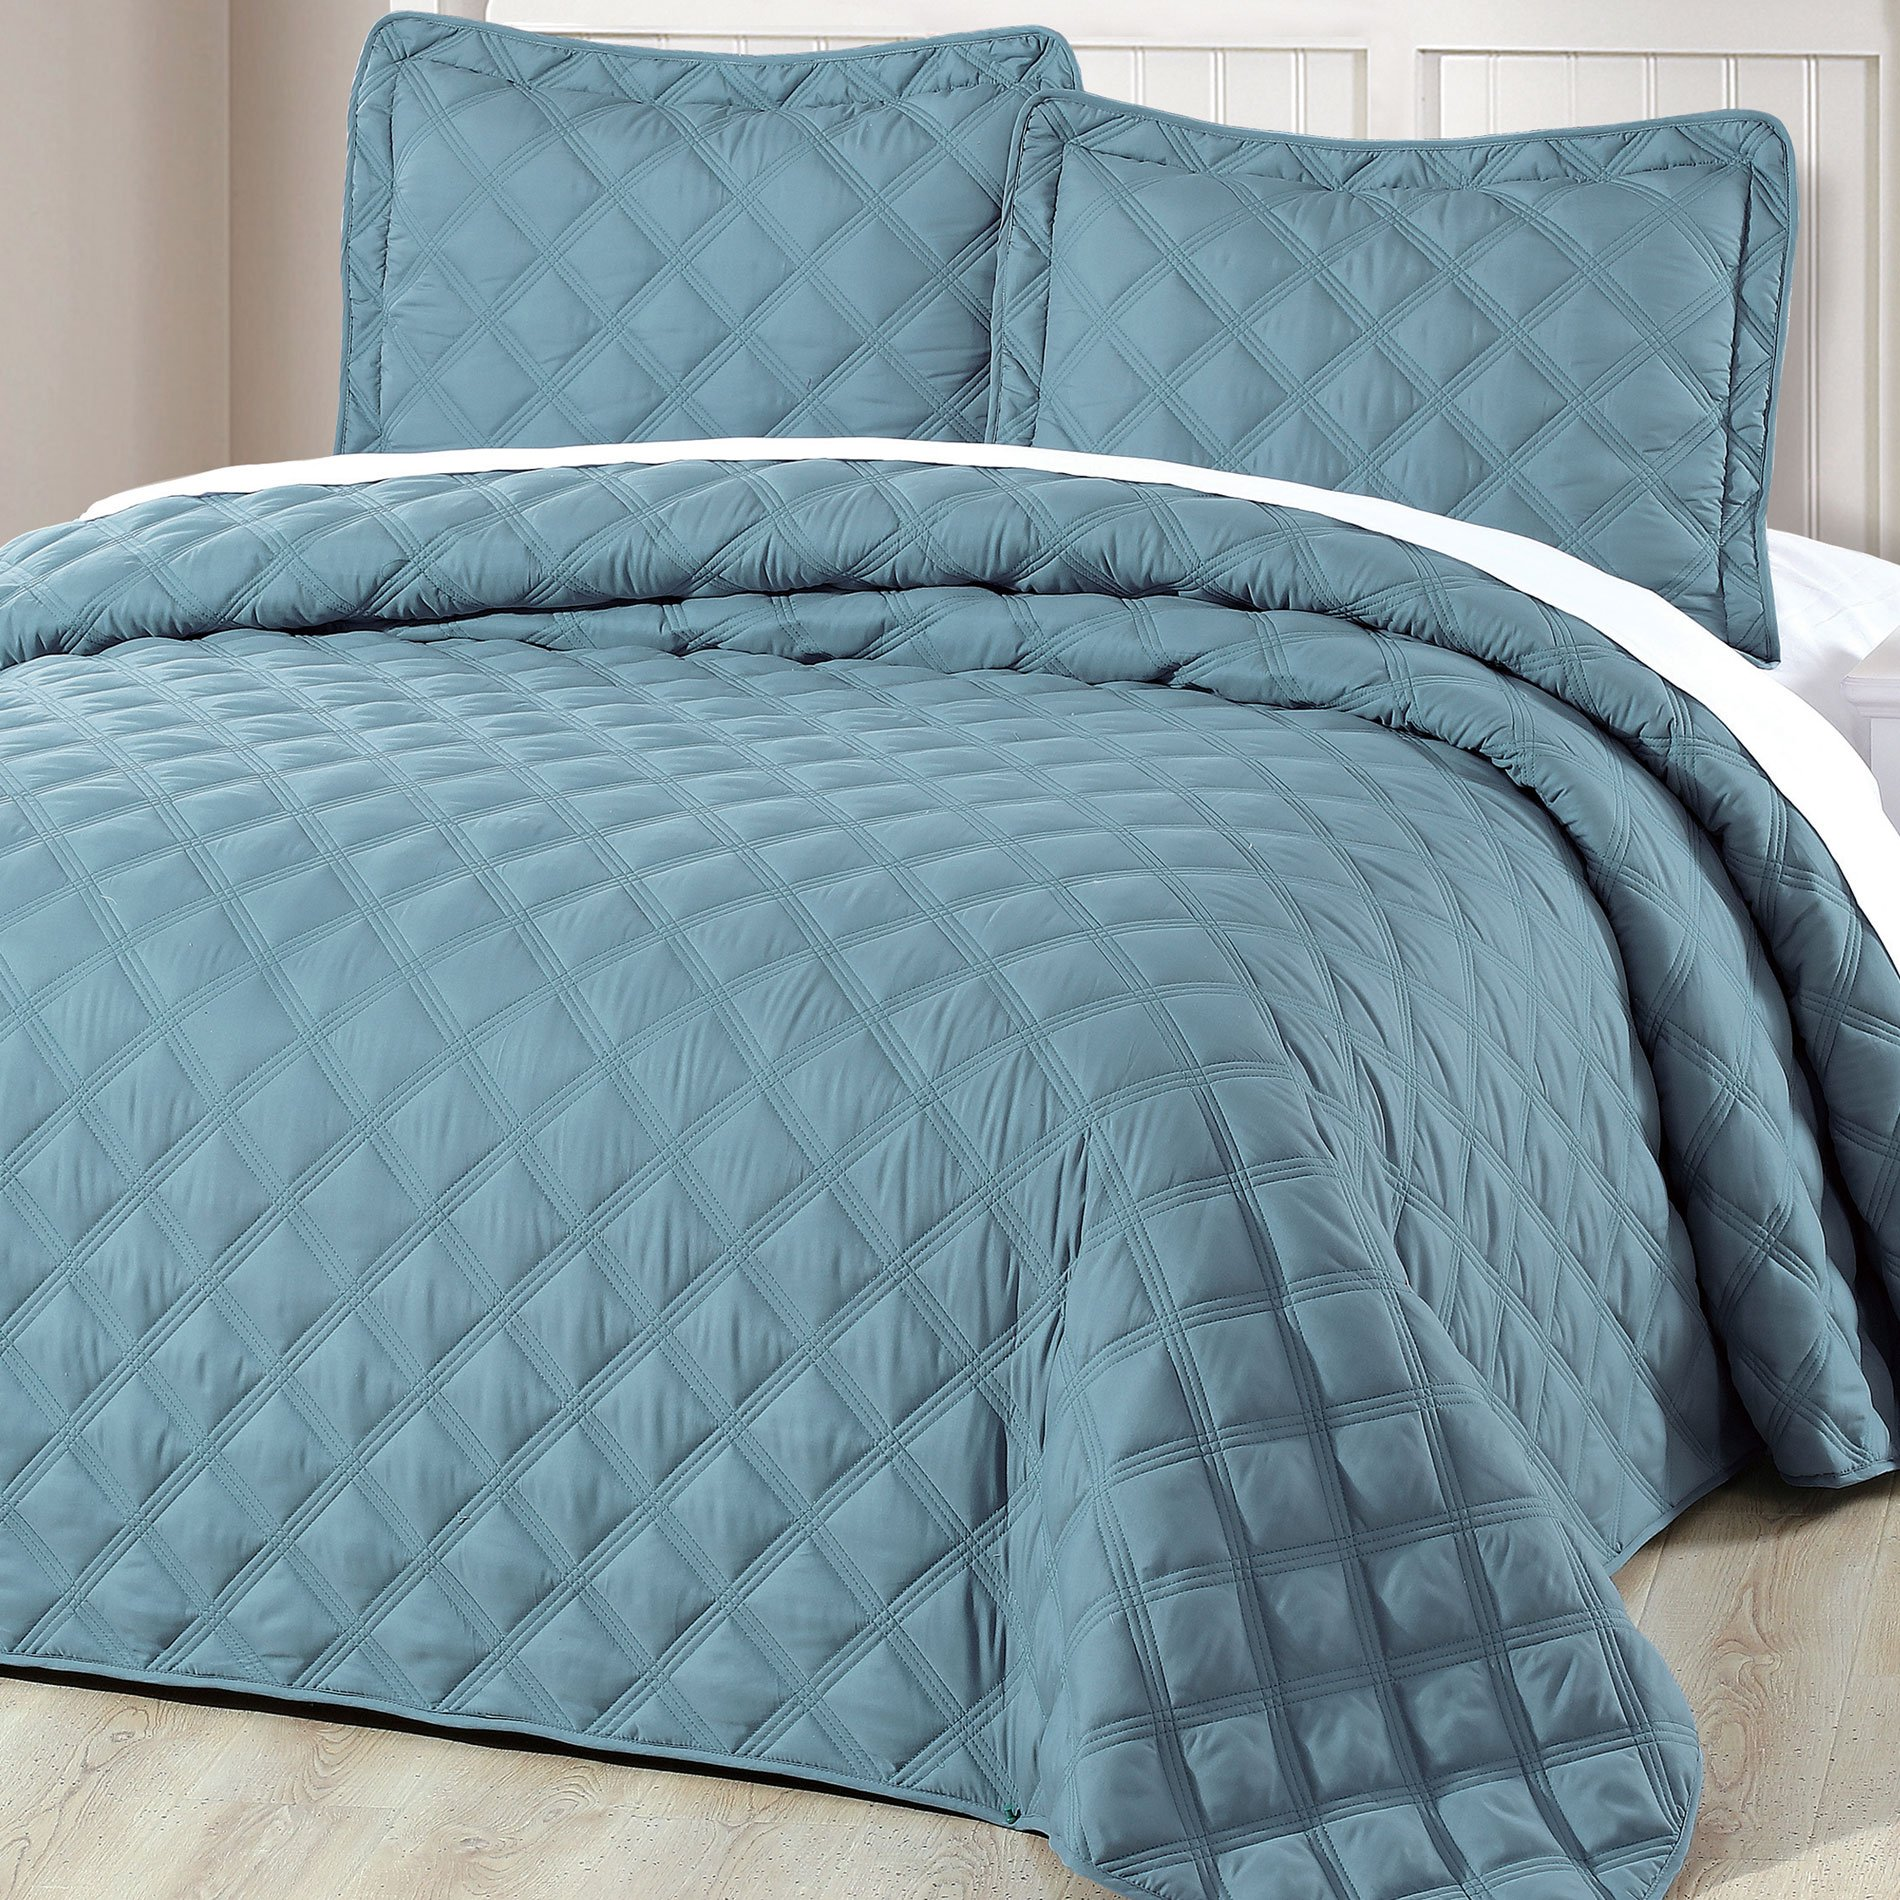 Home Soft Things Serenta Down Alternative Quilted Charleston 3 Piece Bedspread Set, King, Smoke Blue